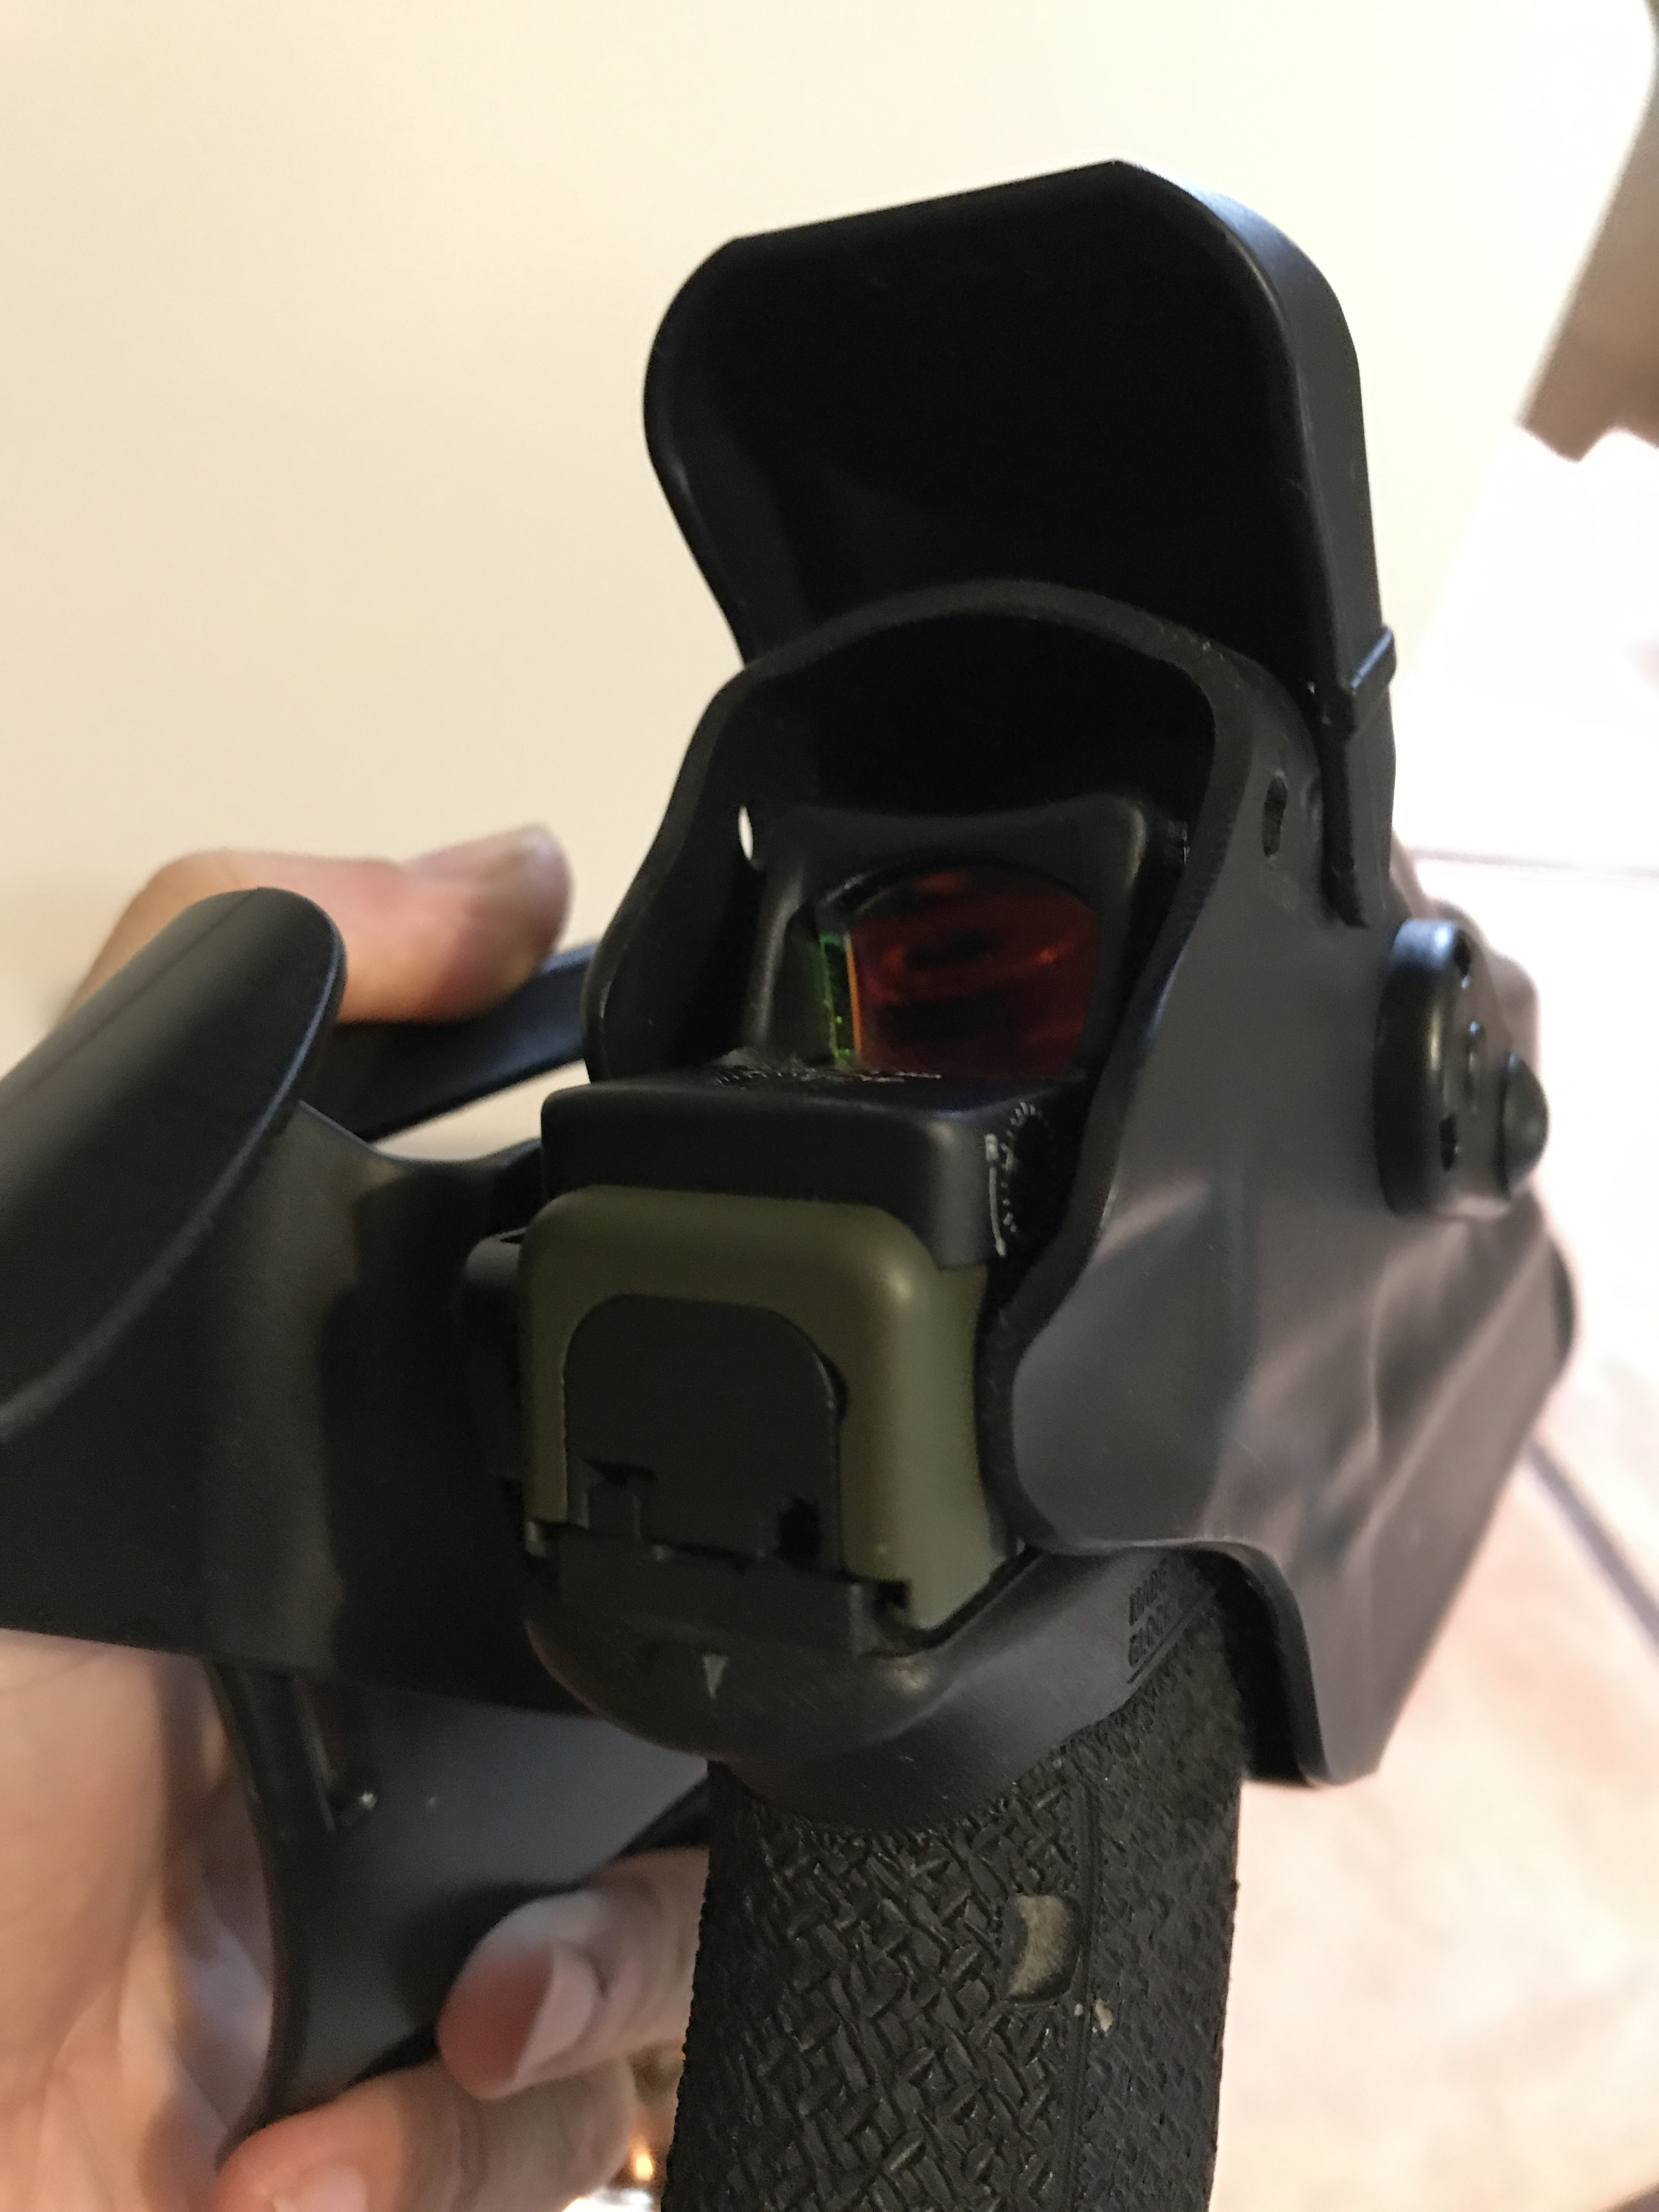 Red Dot Duty Holster from Safariland • Spotter Up